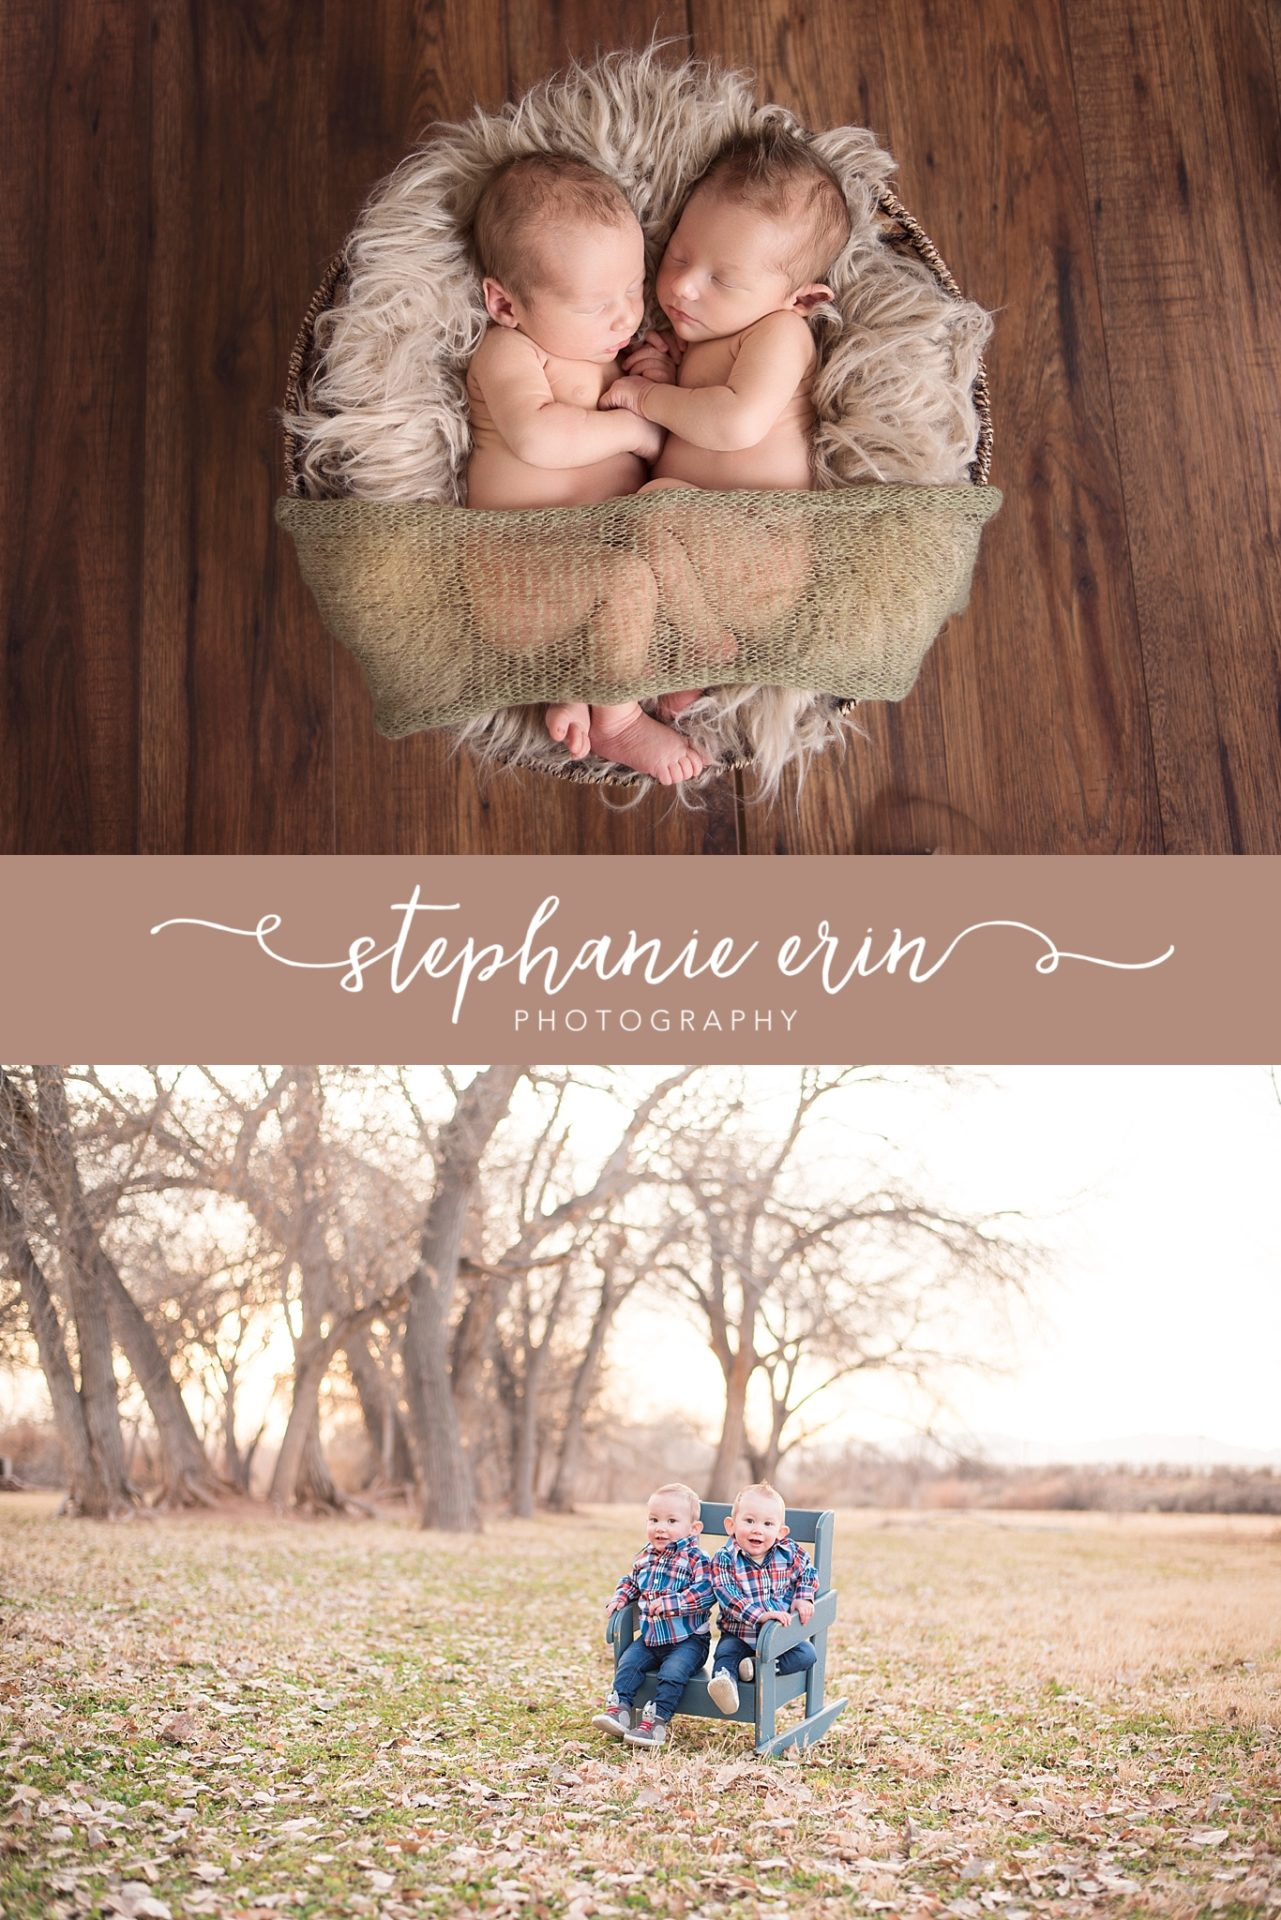 Combs Family Milestone Session | Stephanie Erin Photography | St George Utah Newborn Photographer